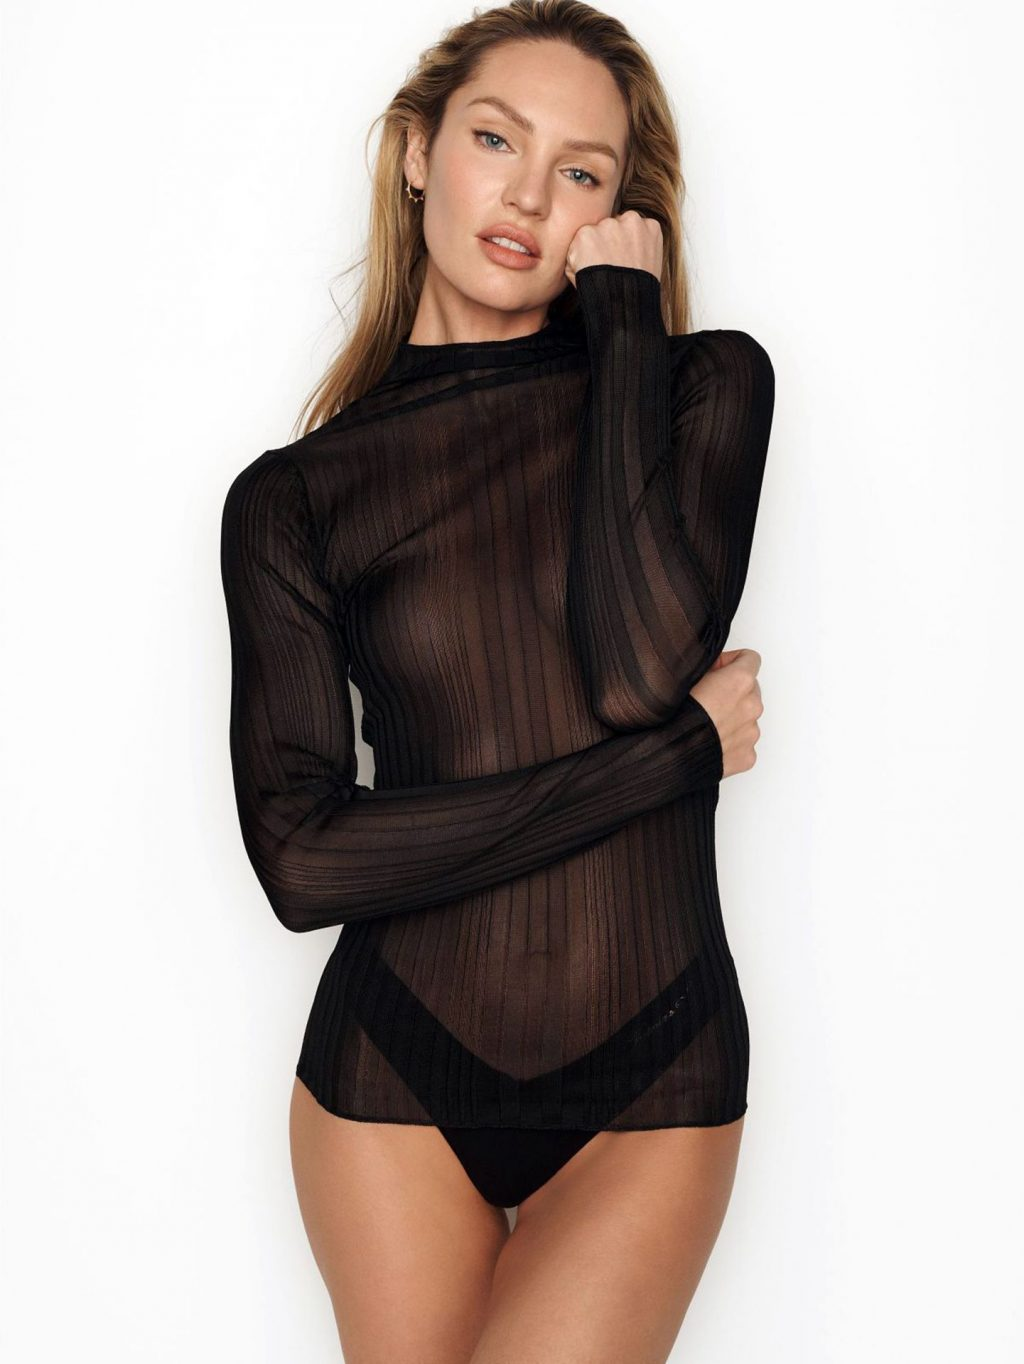 Candice Swanepoel See-Through